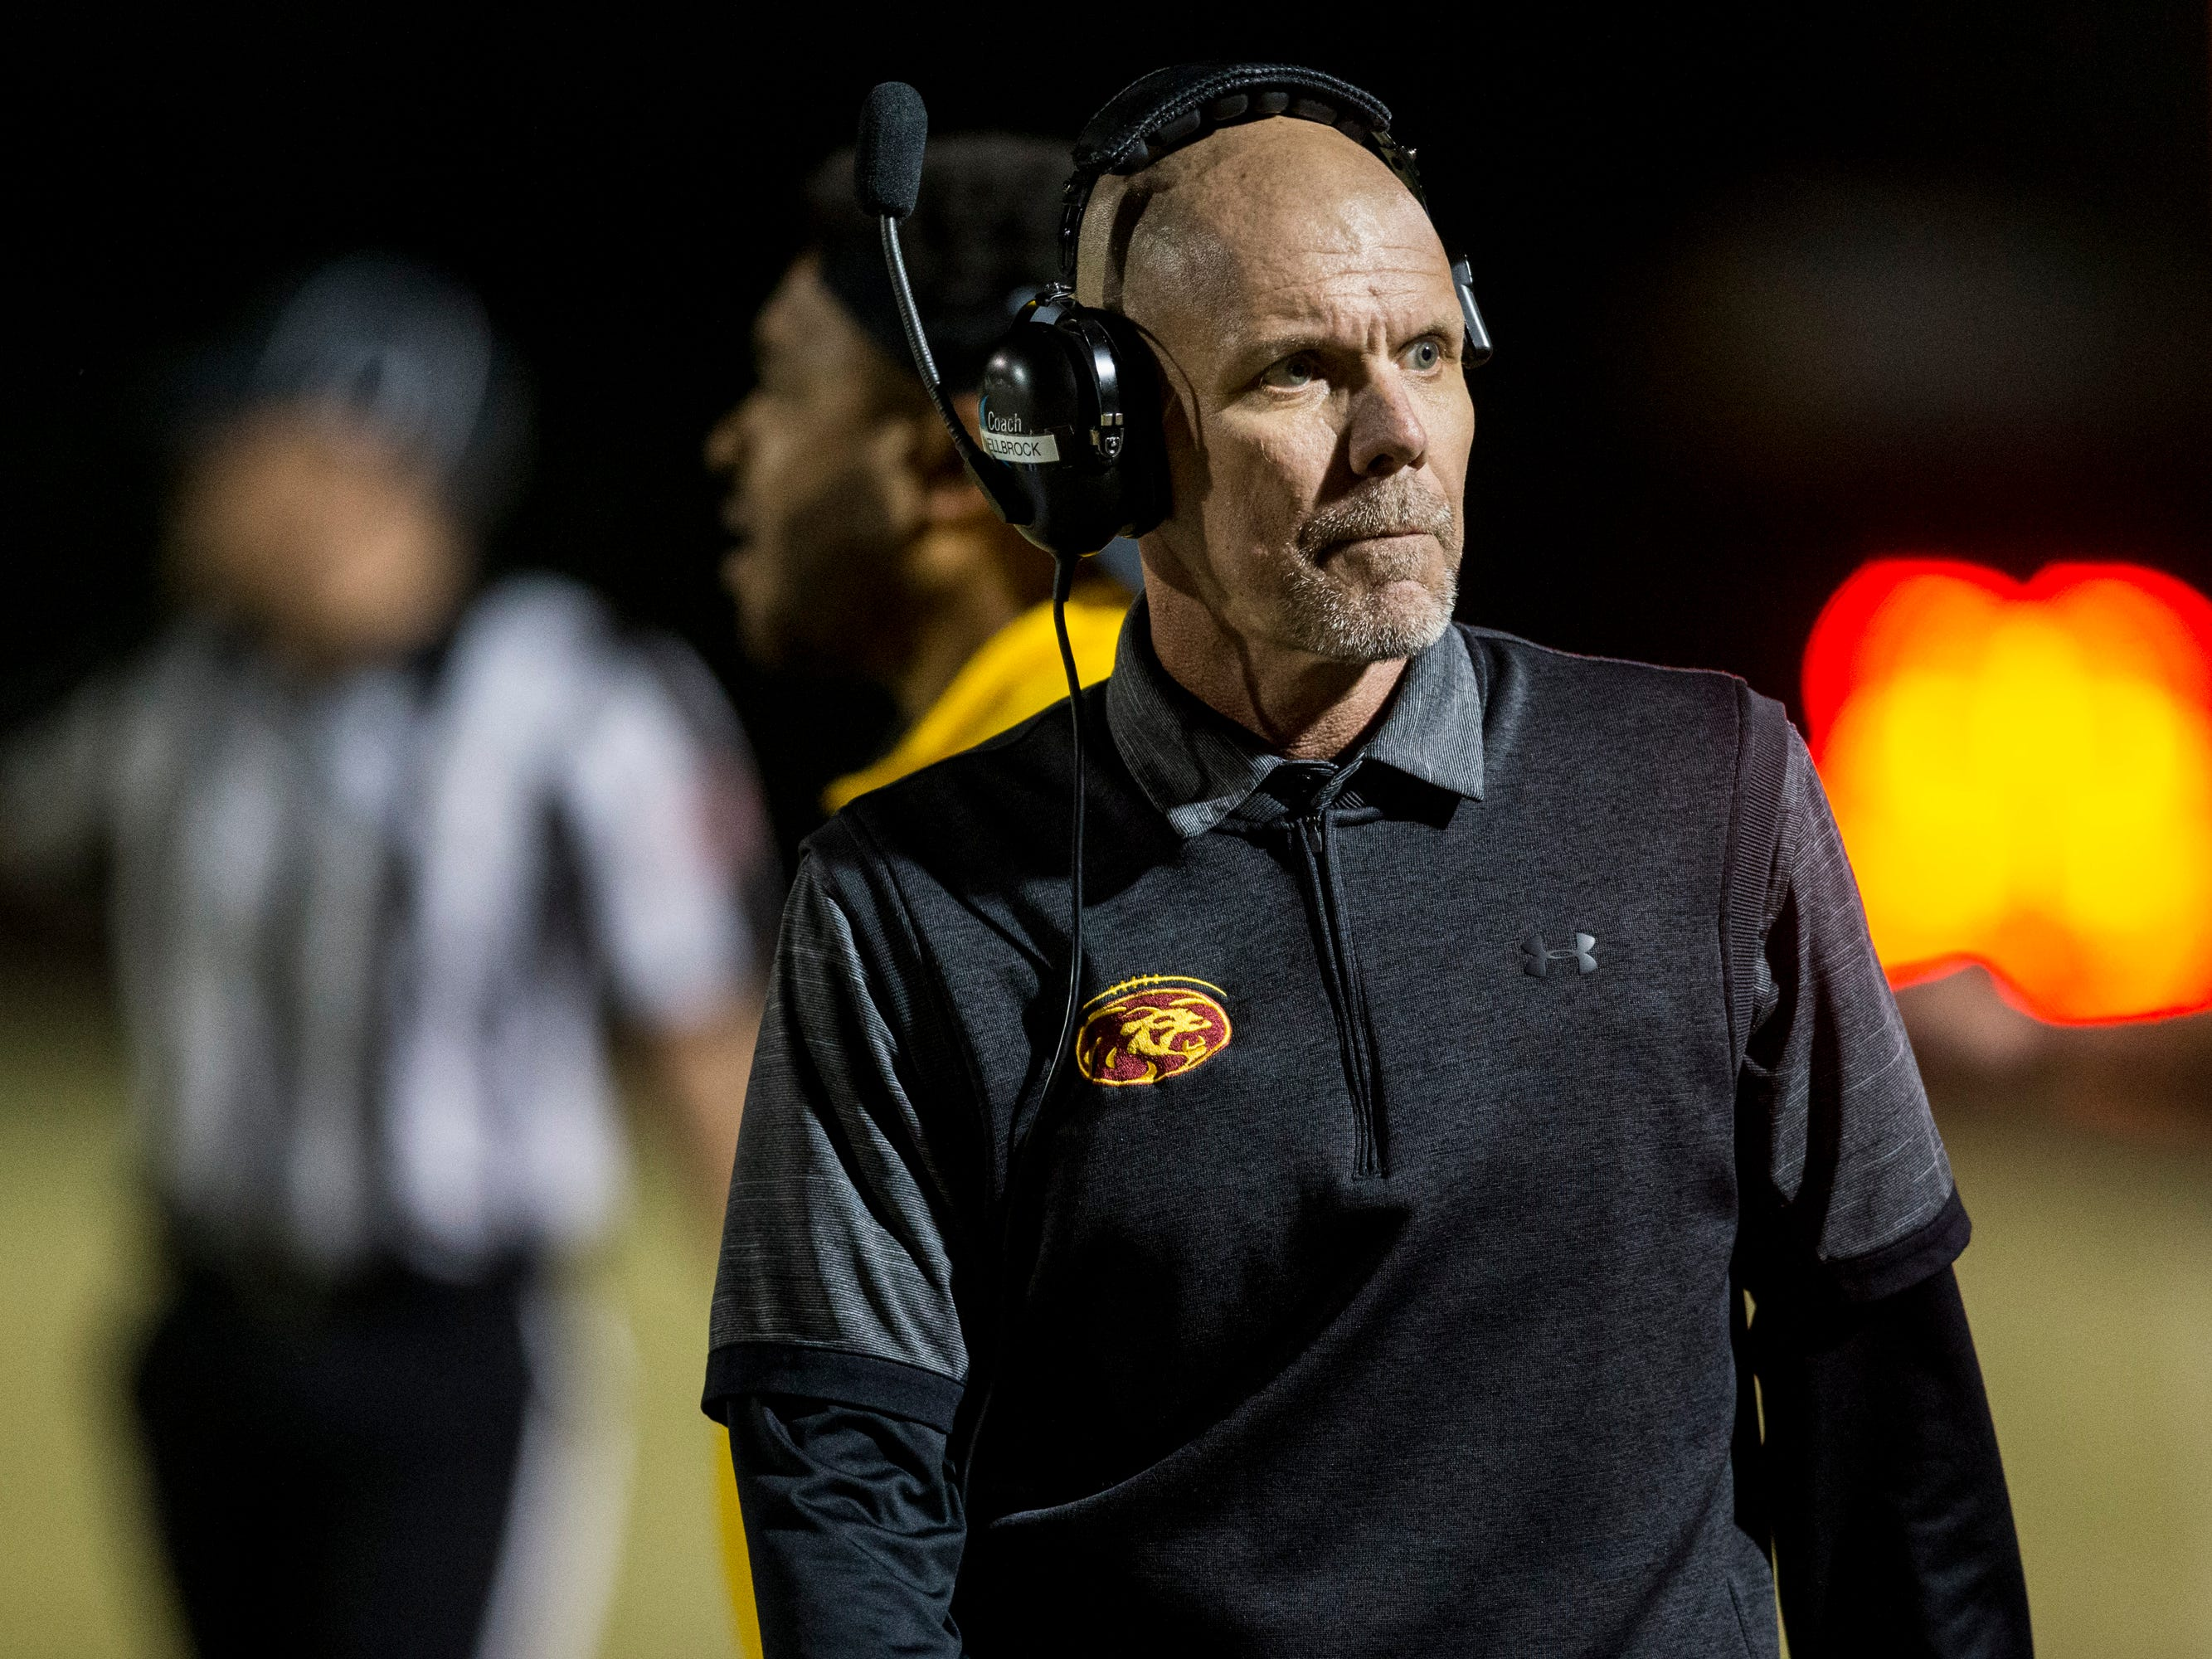 Mountain Pointe head coach Rich Wellbrock stands on the sideline during the game against Chandler on Friday, Nov. 9, 2018, at Chandler High School in Chandler, Ariz.